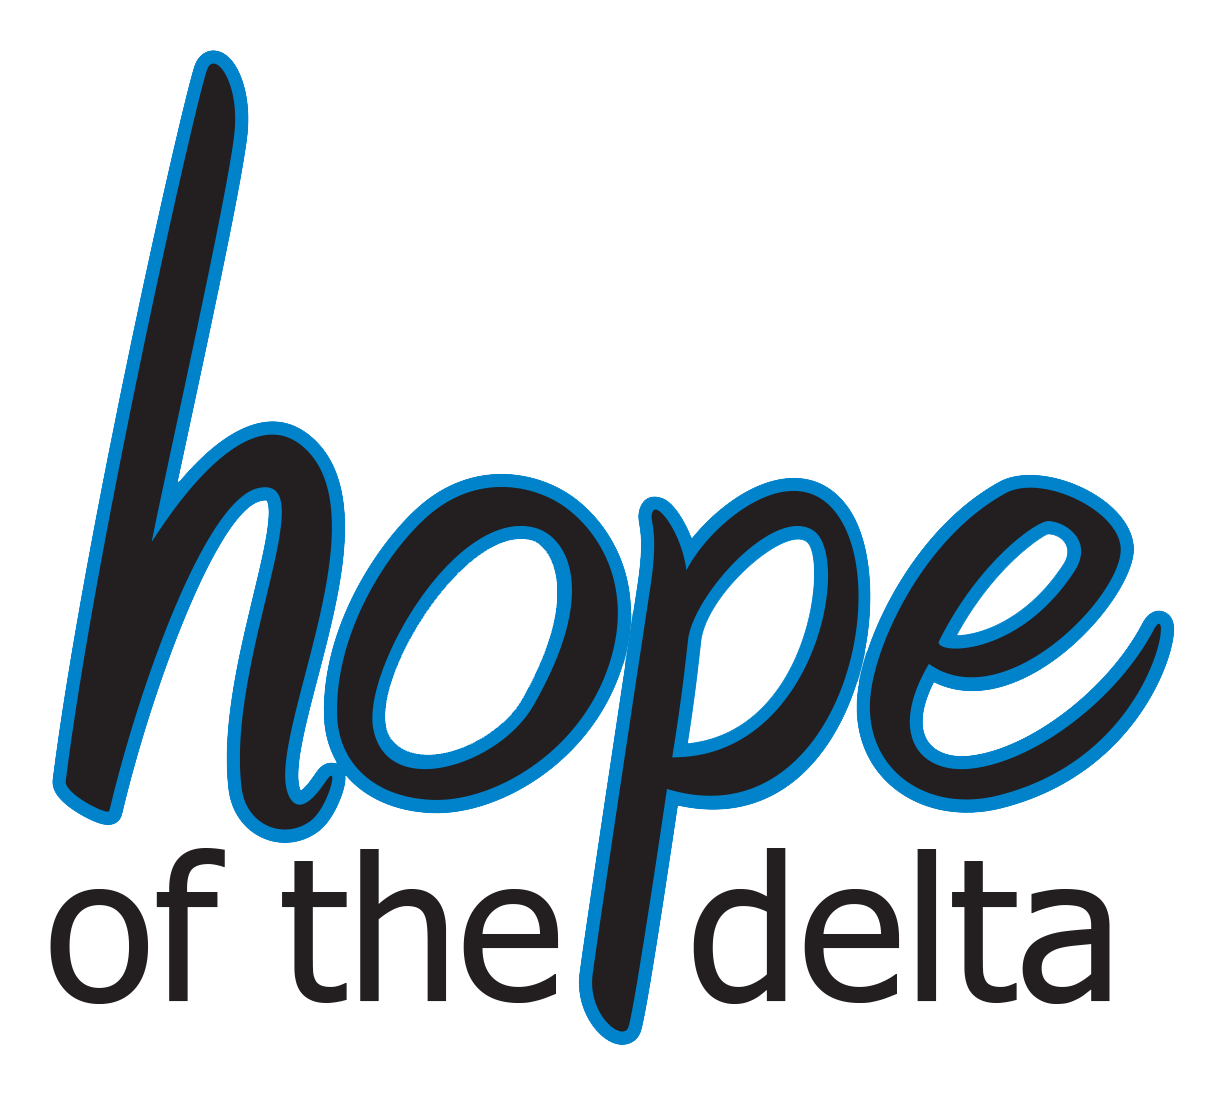 Support Hope of the Delta